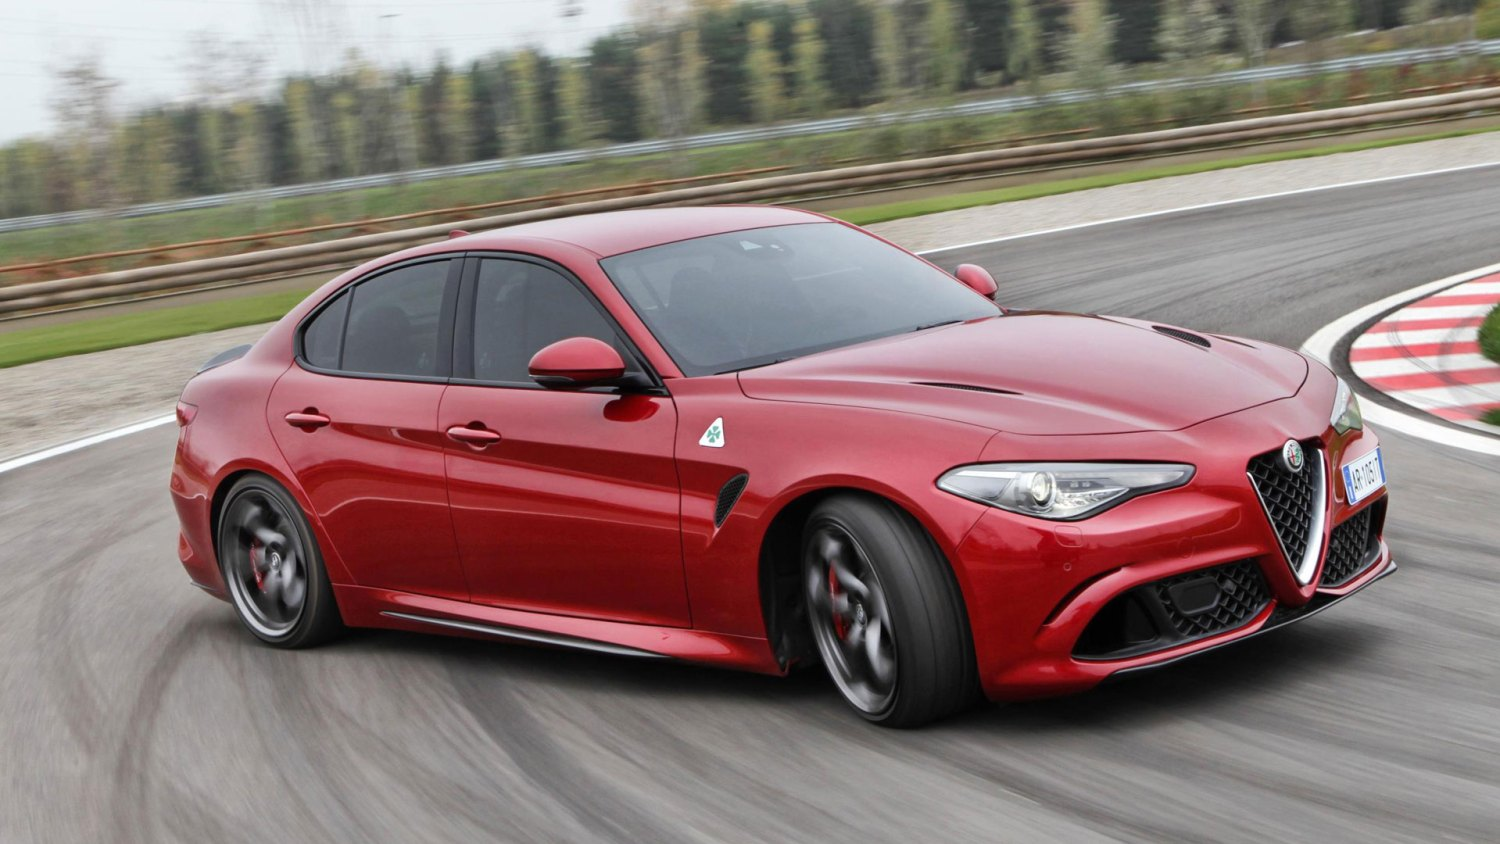 Alfa Romeo Giulia Quadrifoglio - greatest cars of the decade